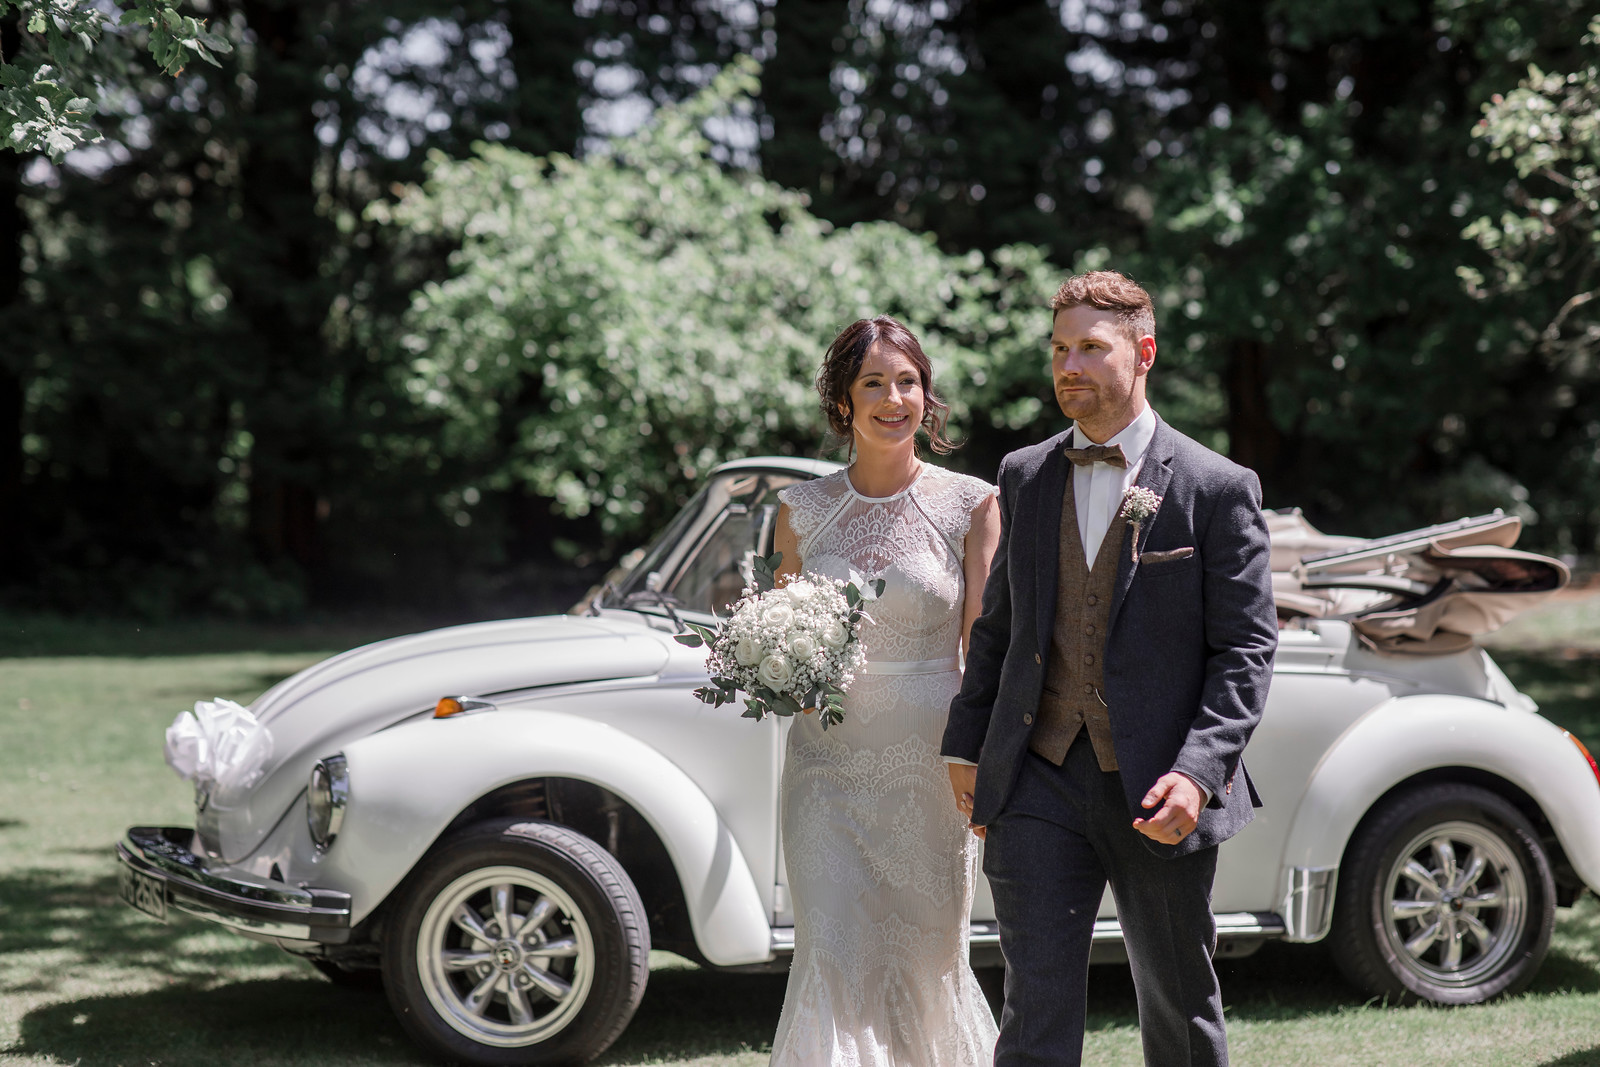 The classic Volkswagen car in the background as bride and groom walk just in front of the wedding car